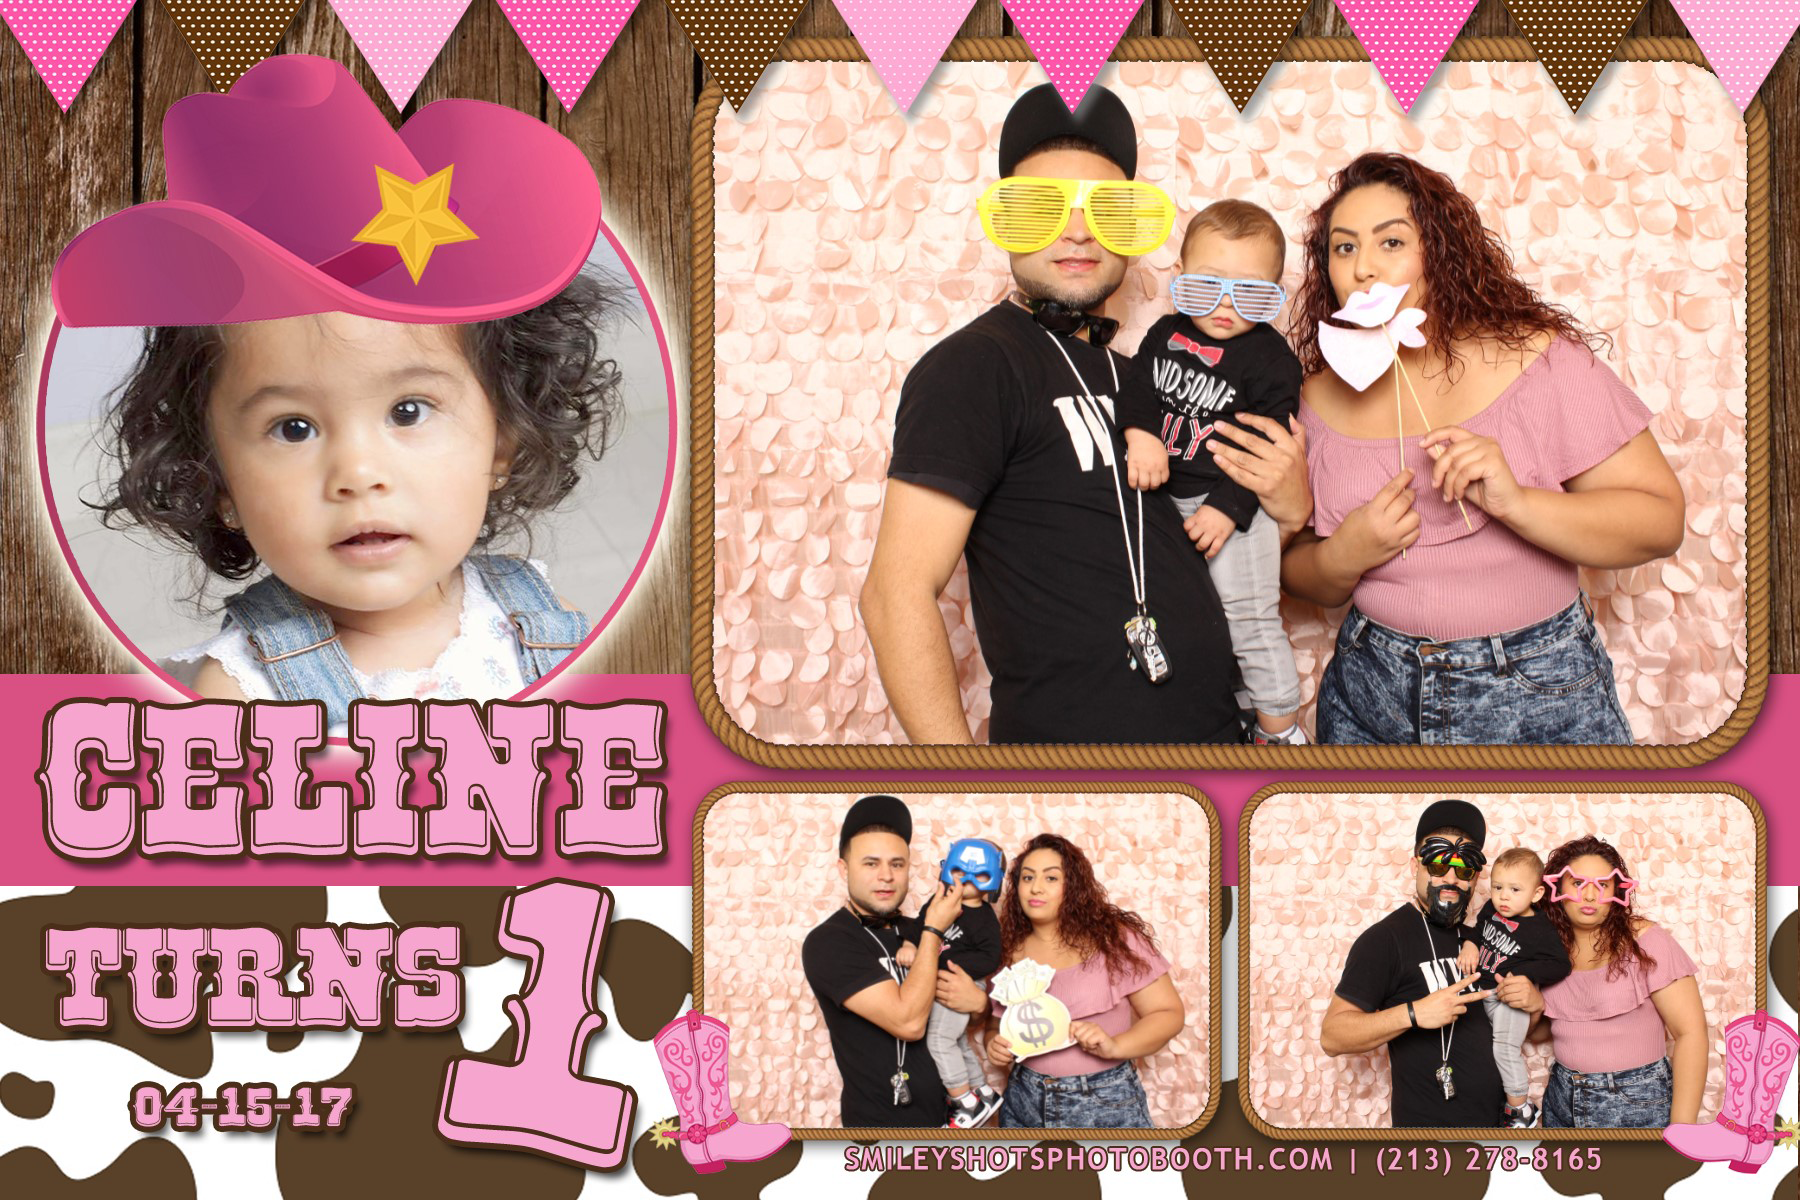 Celine turns 1 Smiley Shots Photo Booth Photobooth (17).png